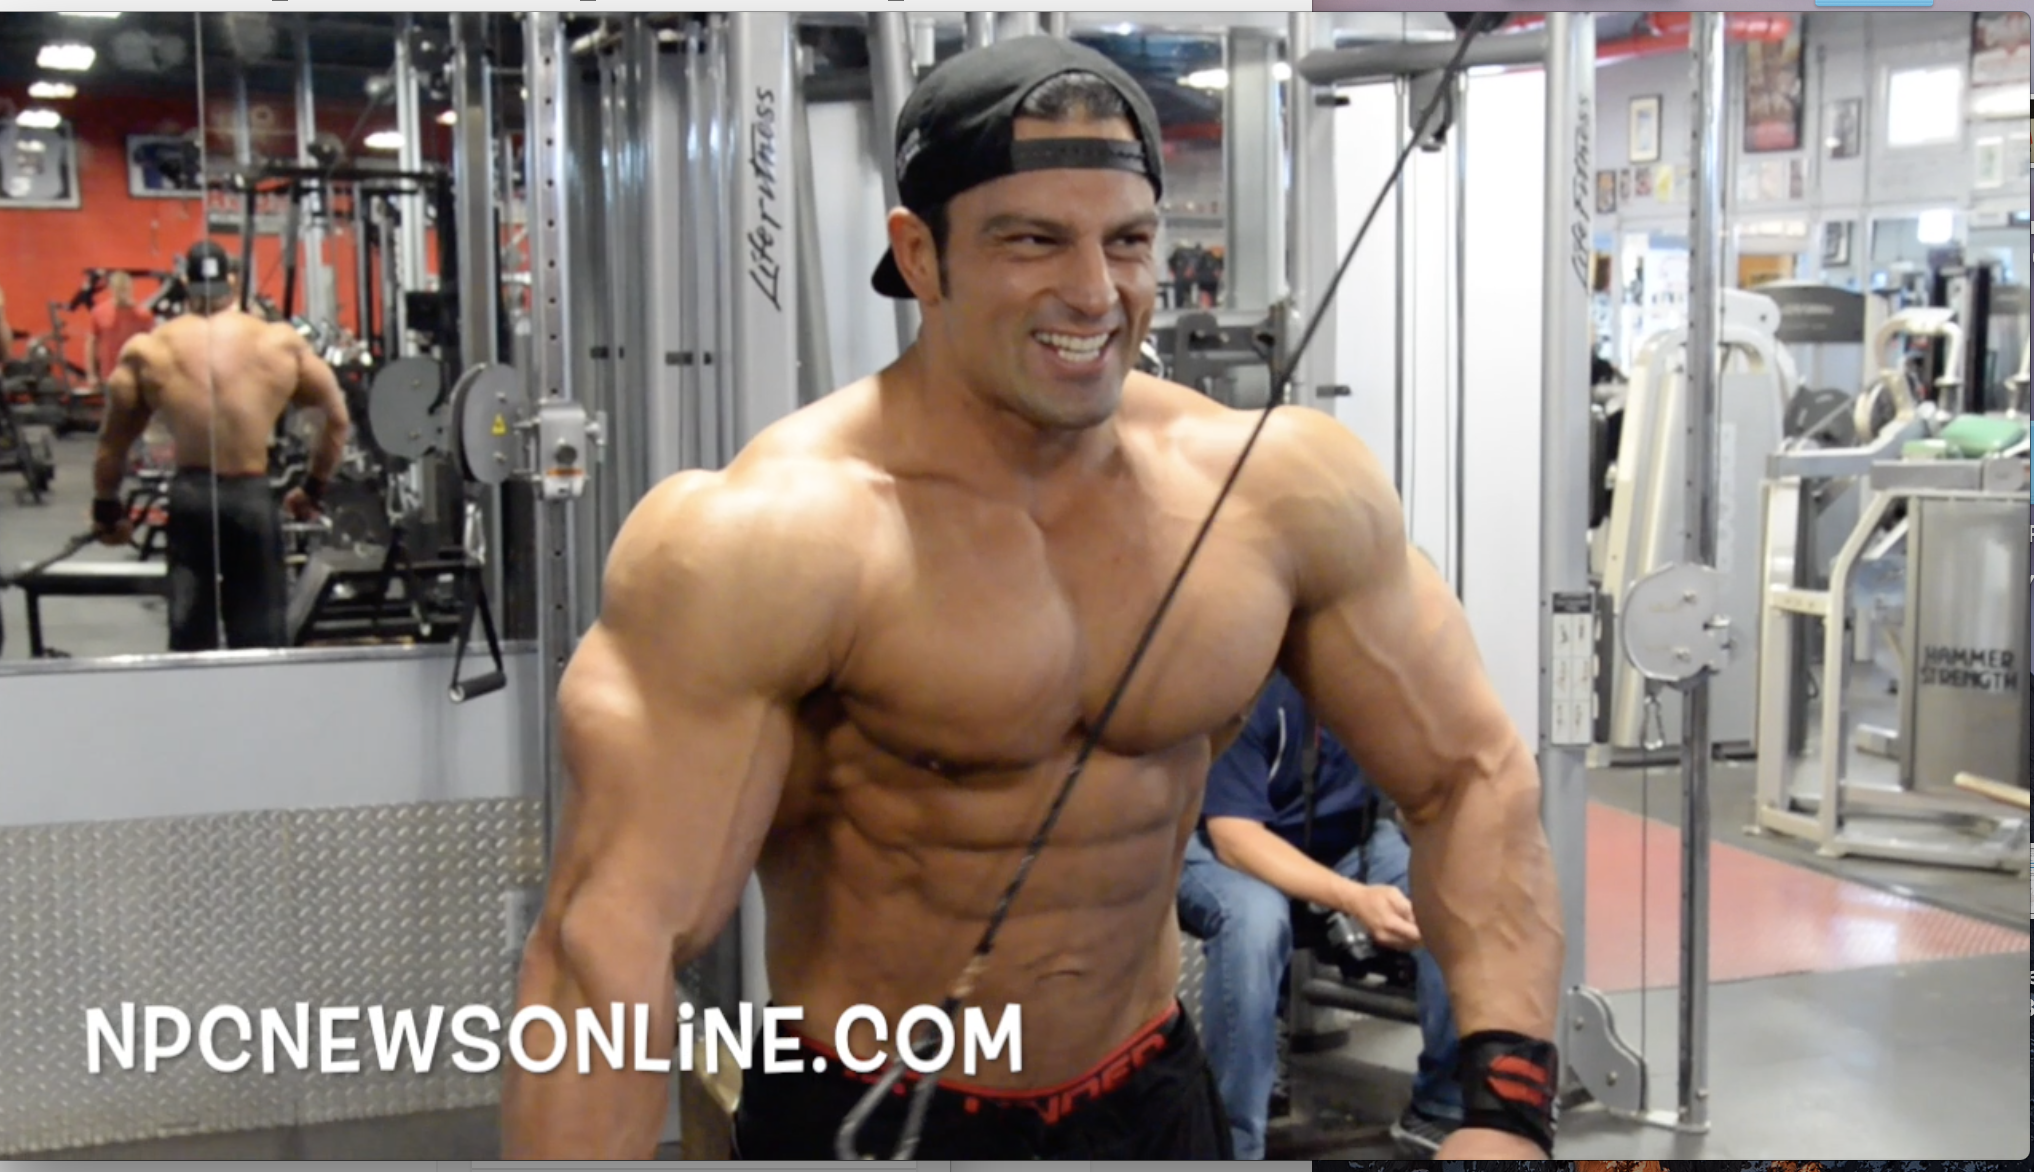 IFBB Classic Physique Pro Arash Rahbar: Arm Workout 5 1/2 weeks Out From The Mr.Olympia